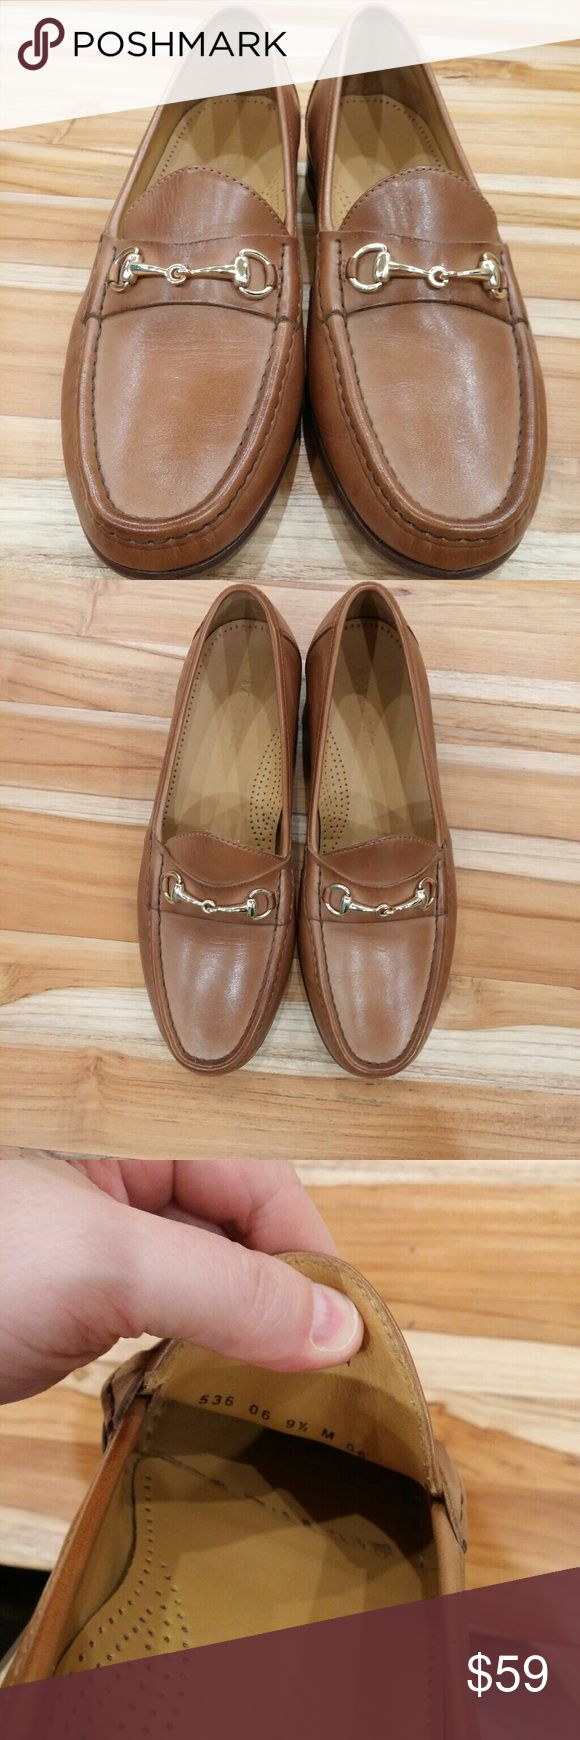 Cole Haan Ascot Bit Loafers British Tan Barely worn (twice) Cole Haan Ascot Bit Loafers in British Tan, size 9 1/2 D.? Style #C09546.?  Currently on sale on the Cole Haan Outlet website for $102.00.?  Description from the site:? Flawlessly crafted of supple calfskin with genuine hand-sewn construction and horse-bit metal hardware.? The sleek, elegant profile looks debonair with a tailored blazer and slim trousers or dark denim and a cashmere pullover.? Cole Haan Shoes Loafers & Slip-Ons